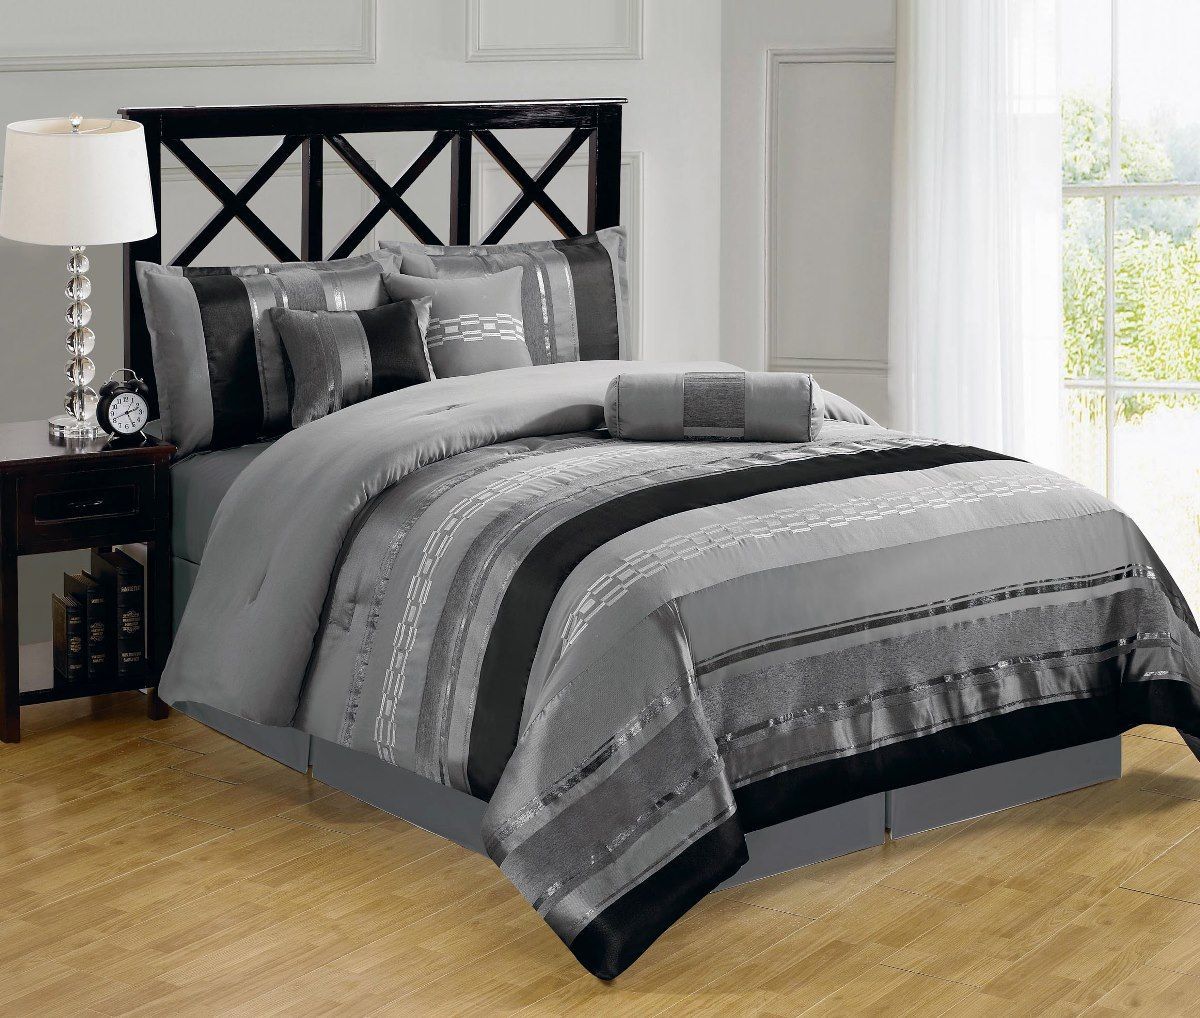 King Size Bedroom Comforter Sets pink+and+gray+bedding+sets+king | bone collector pink and grey